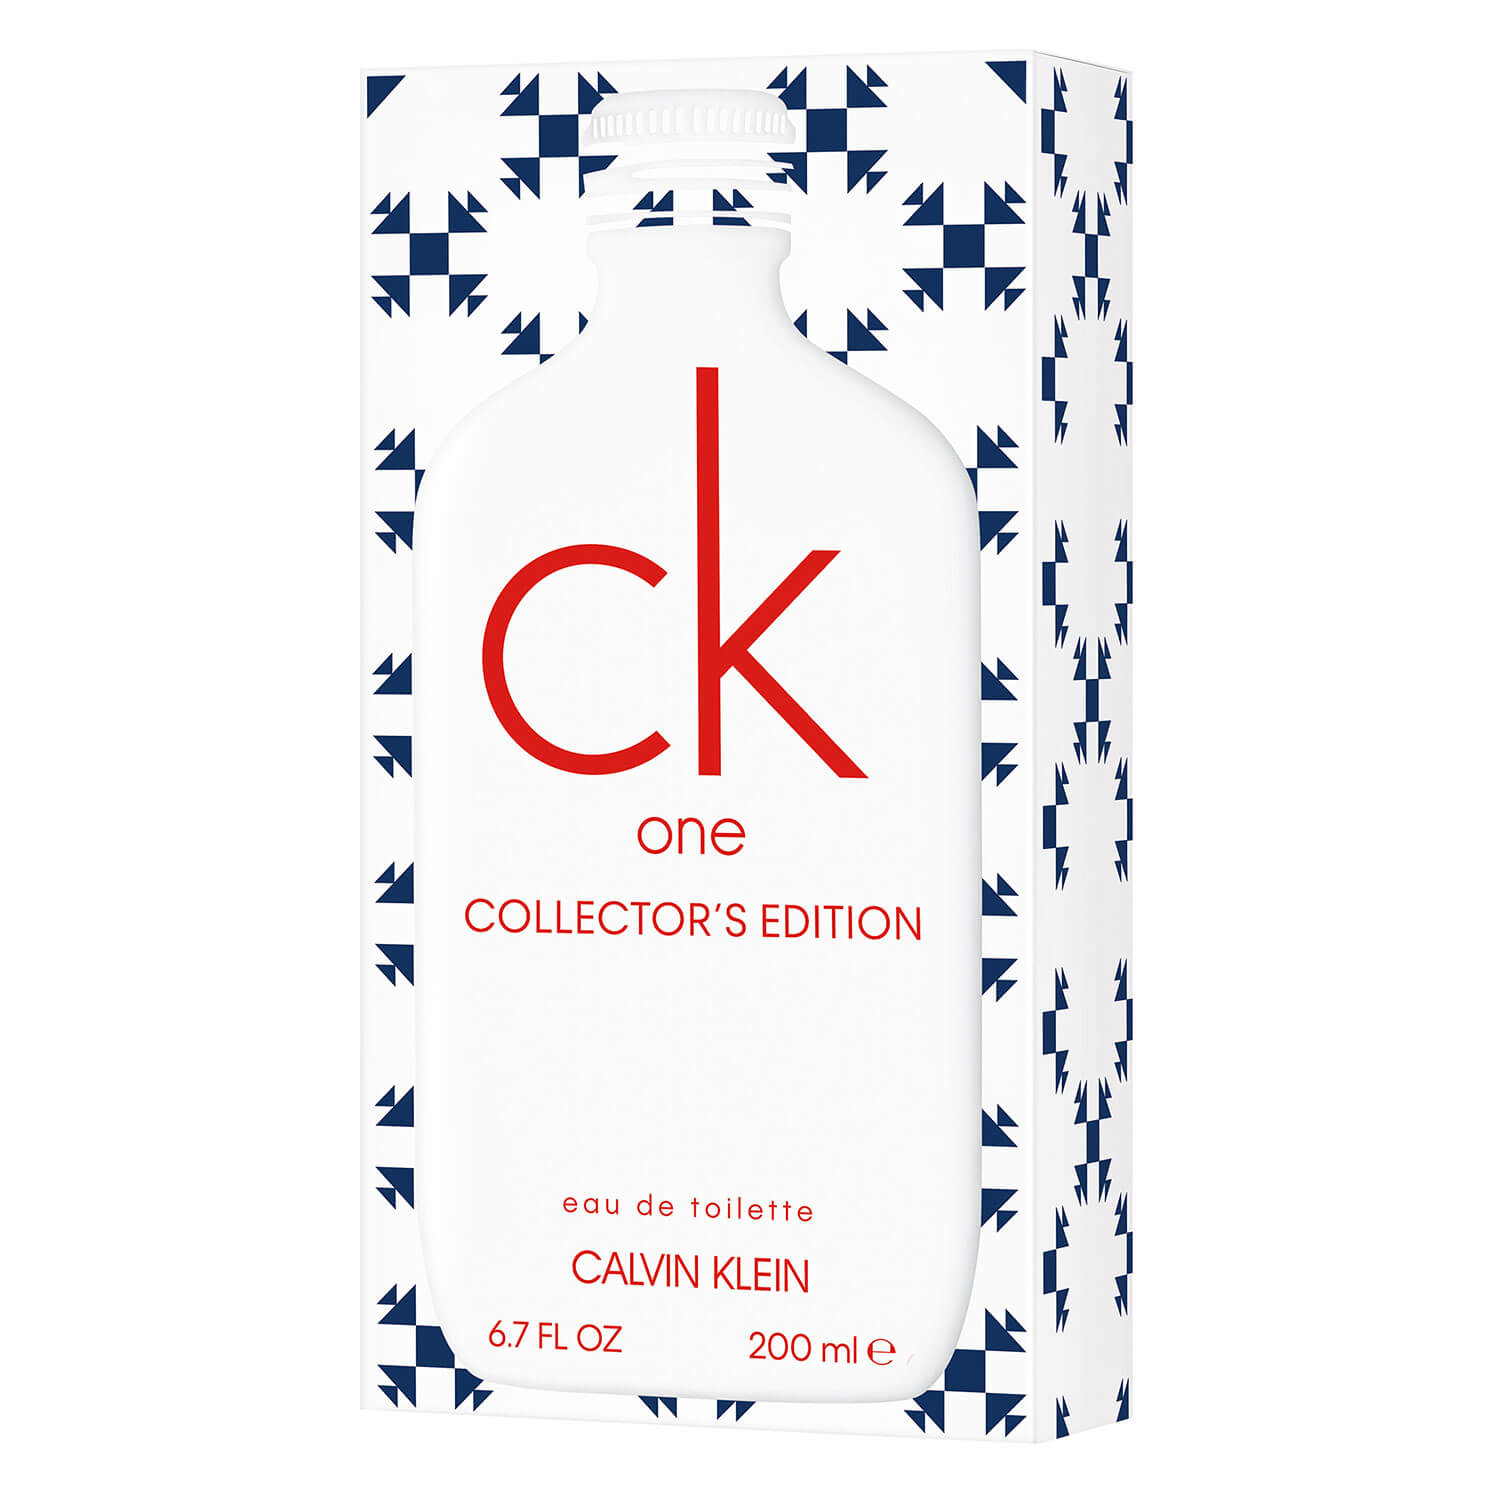 CK One - Collector's Edition Eau de Toilette